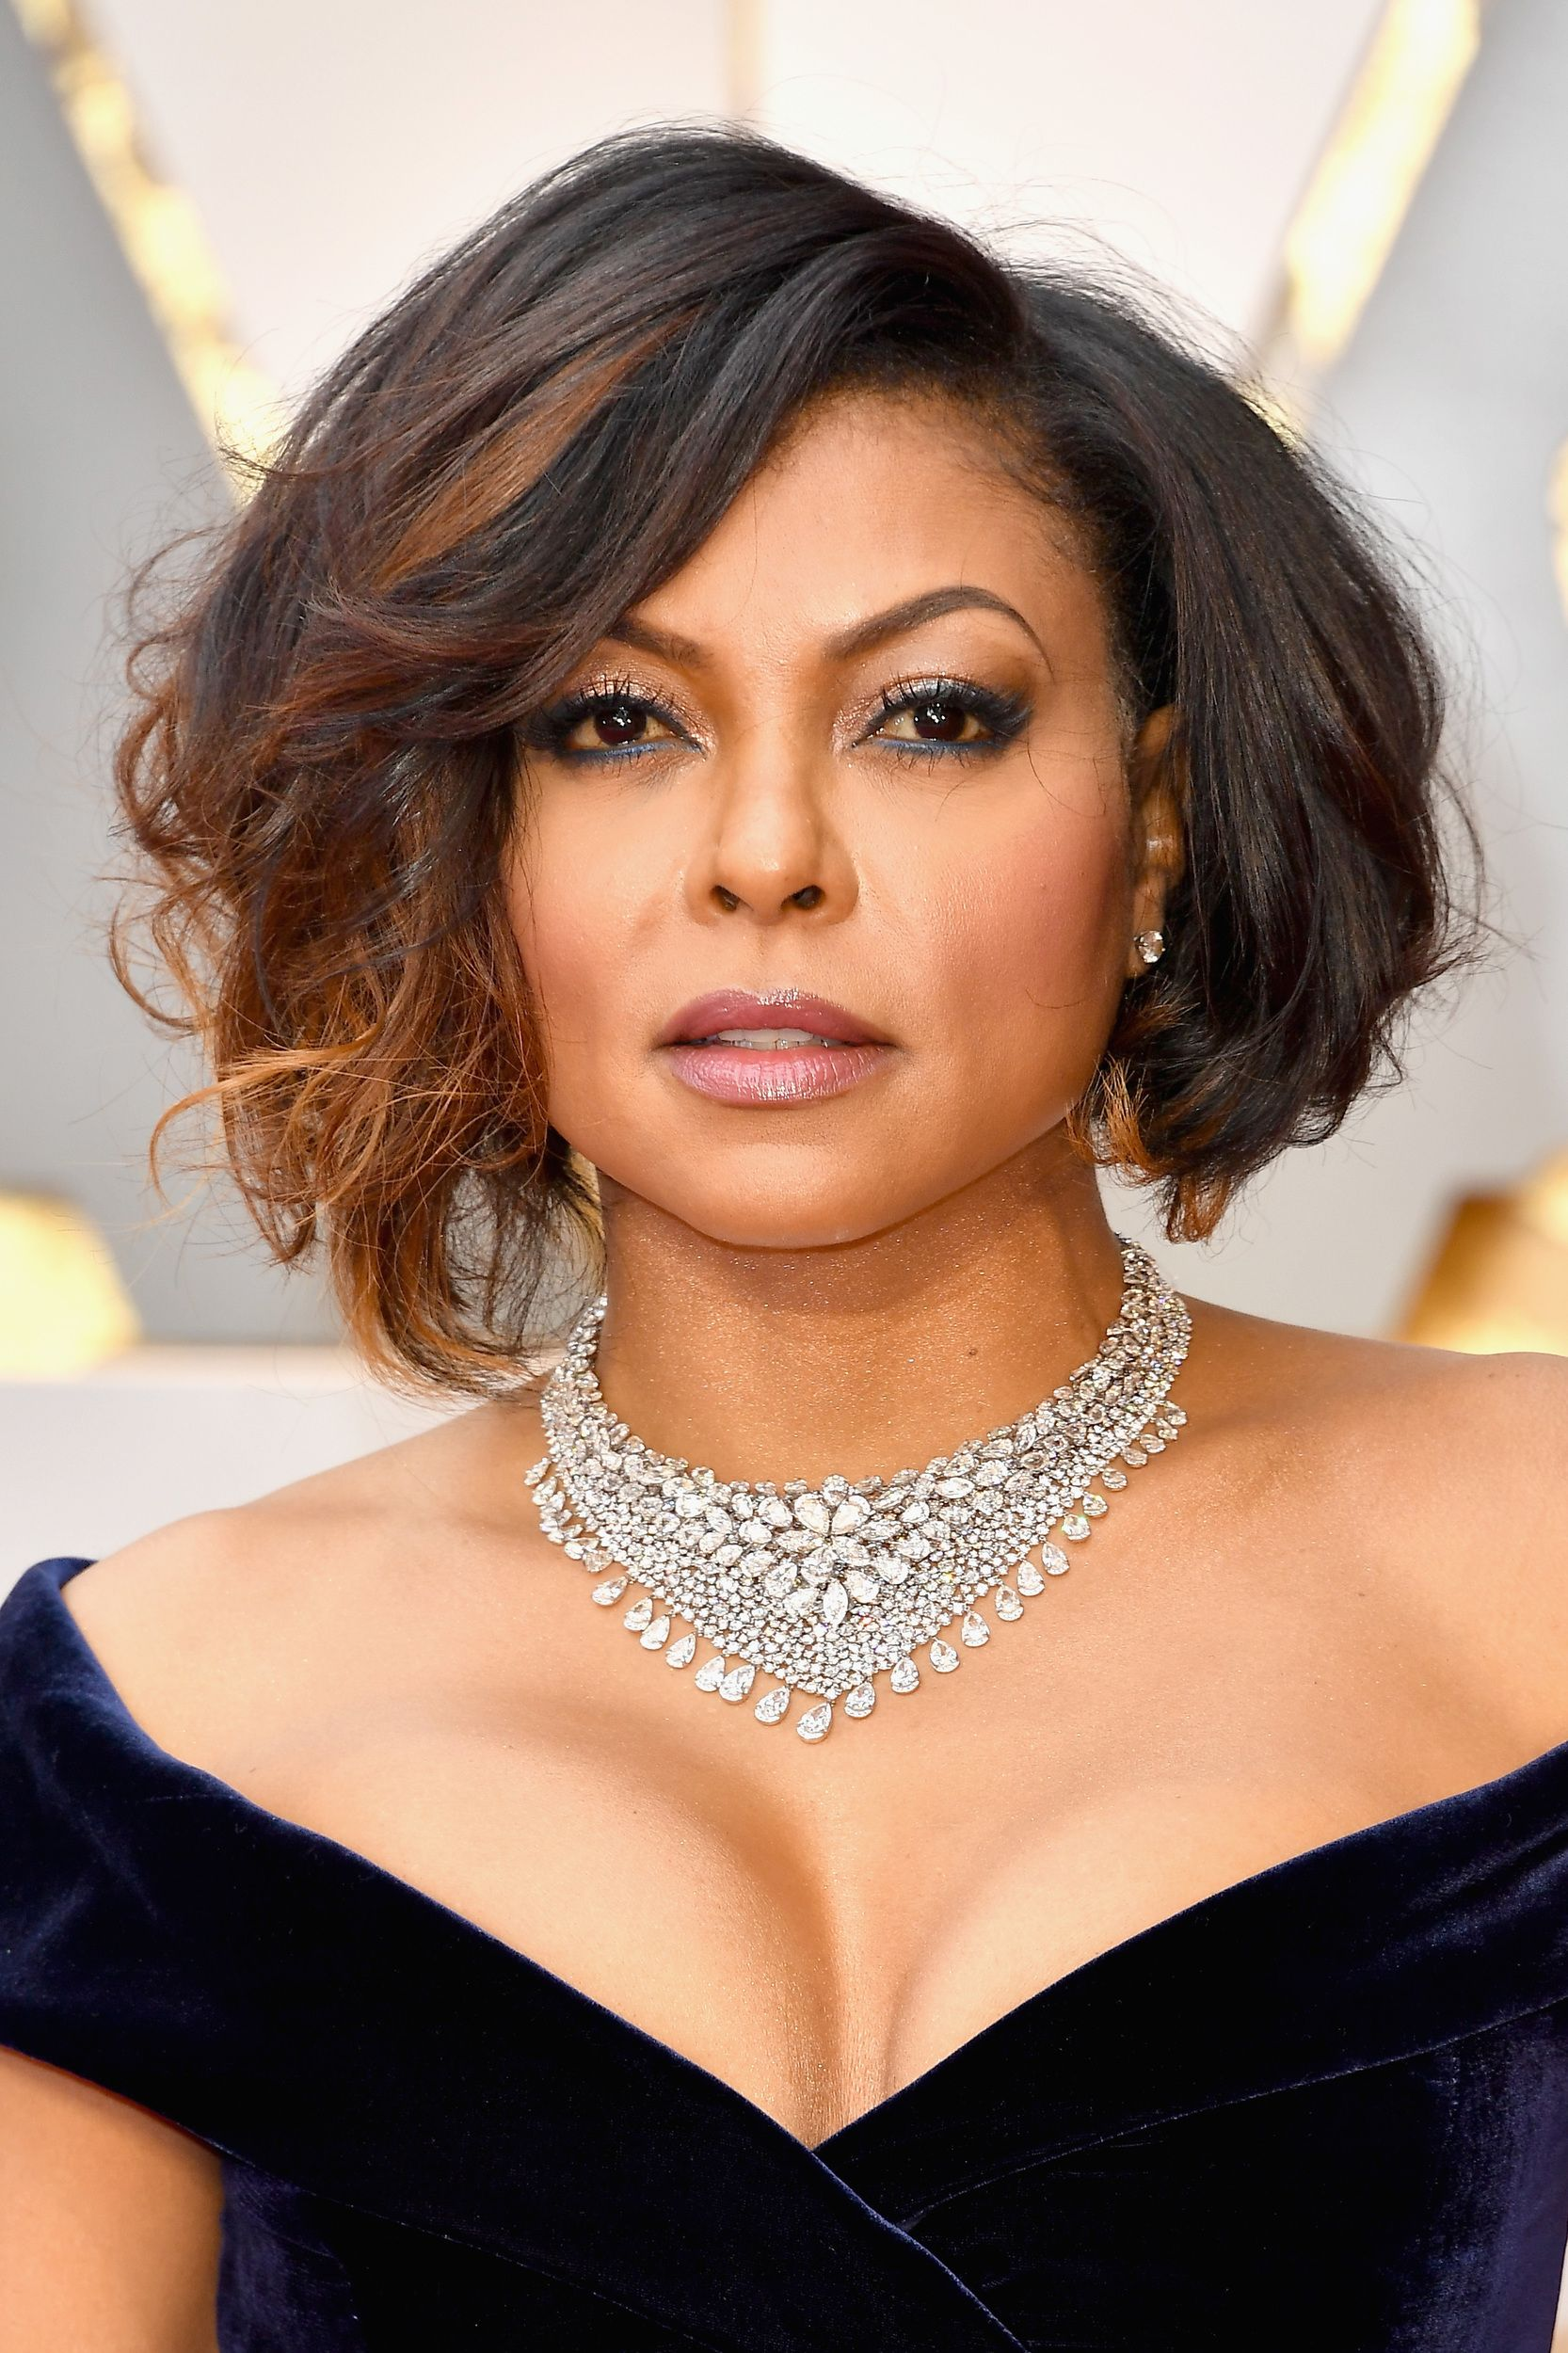 Slay! Taraji P. Henson's blue velvet gown is absolute